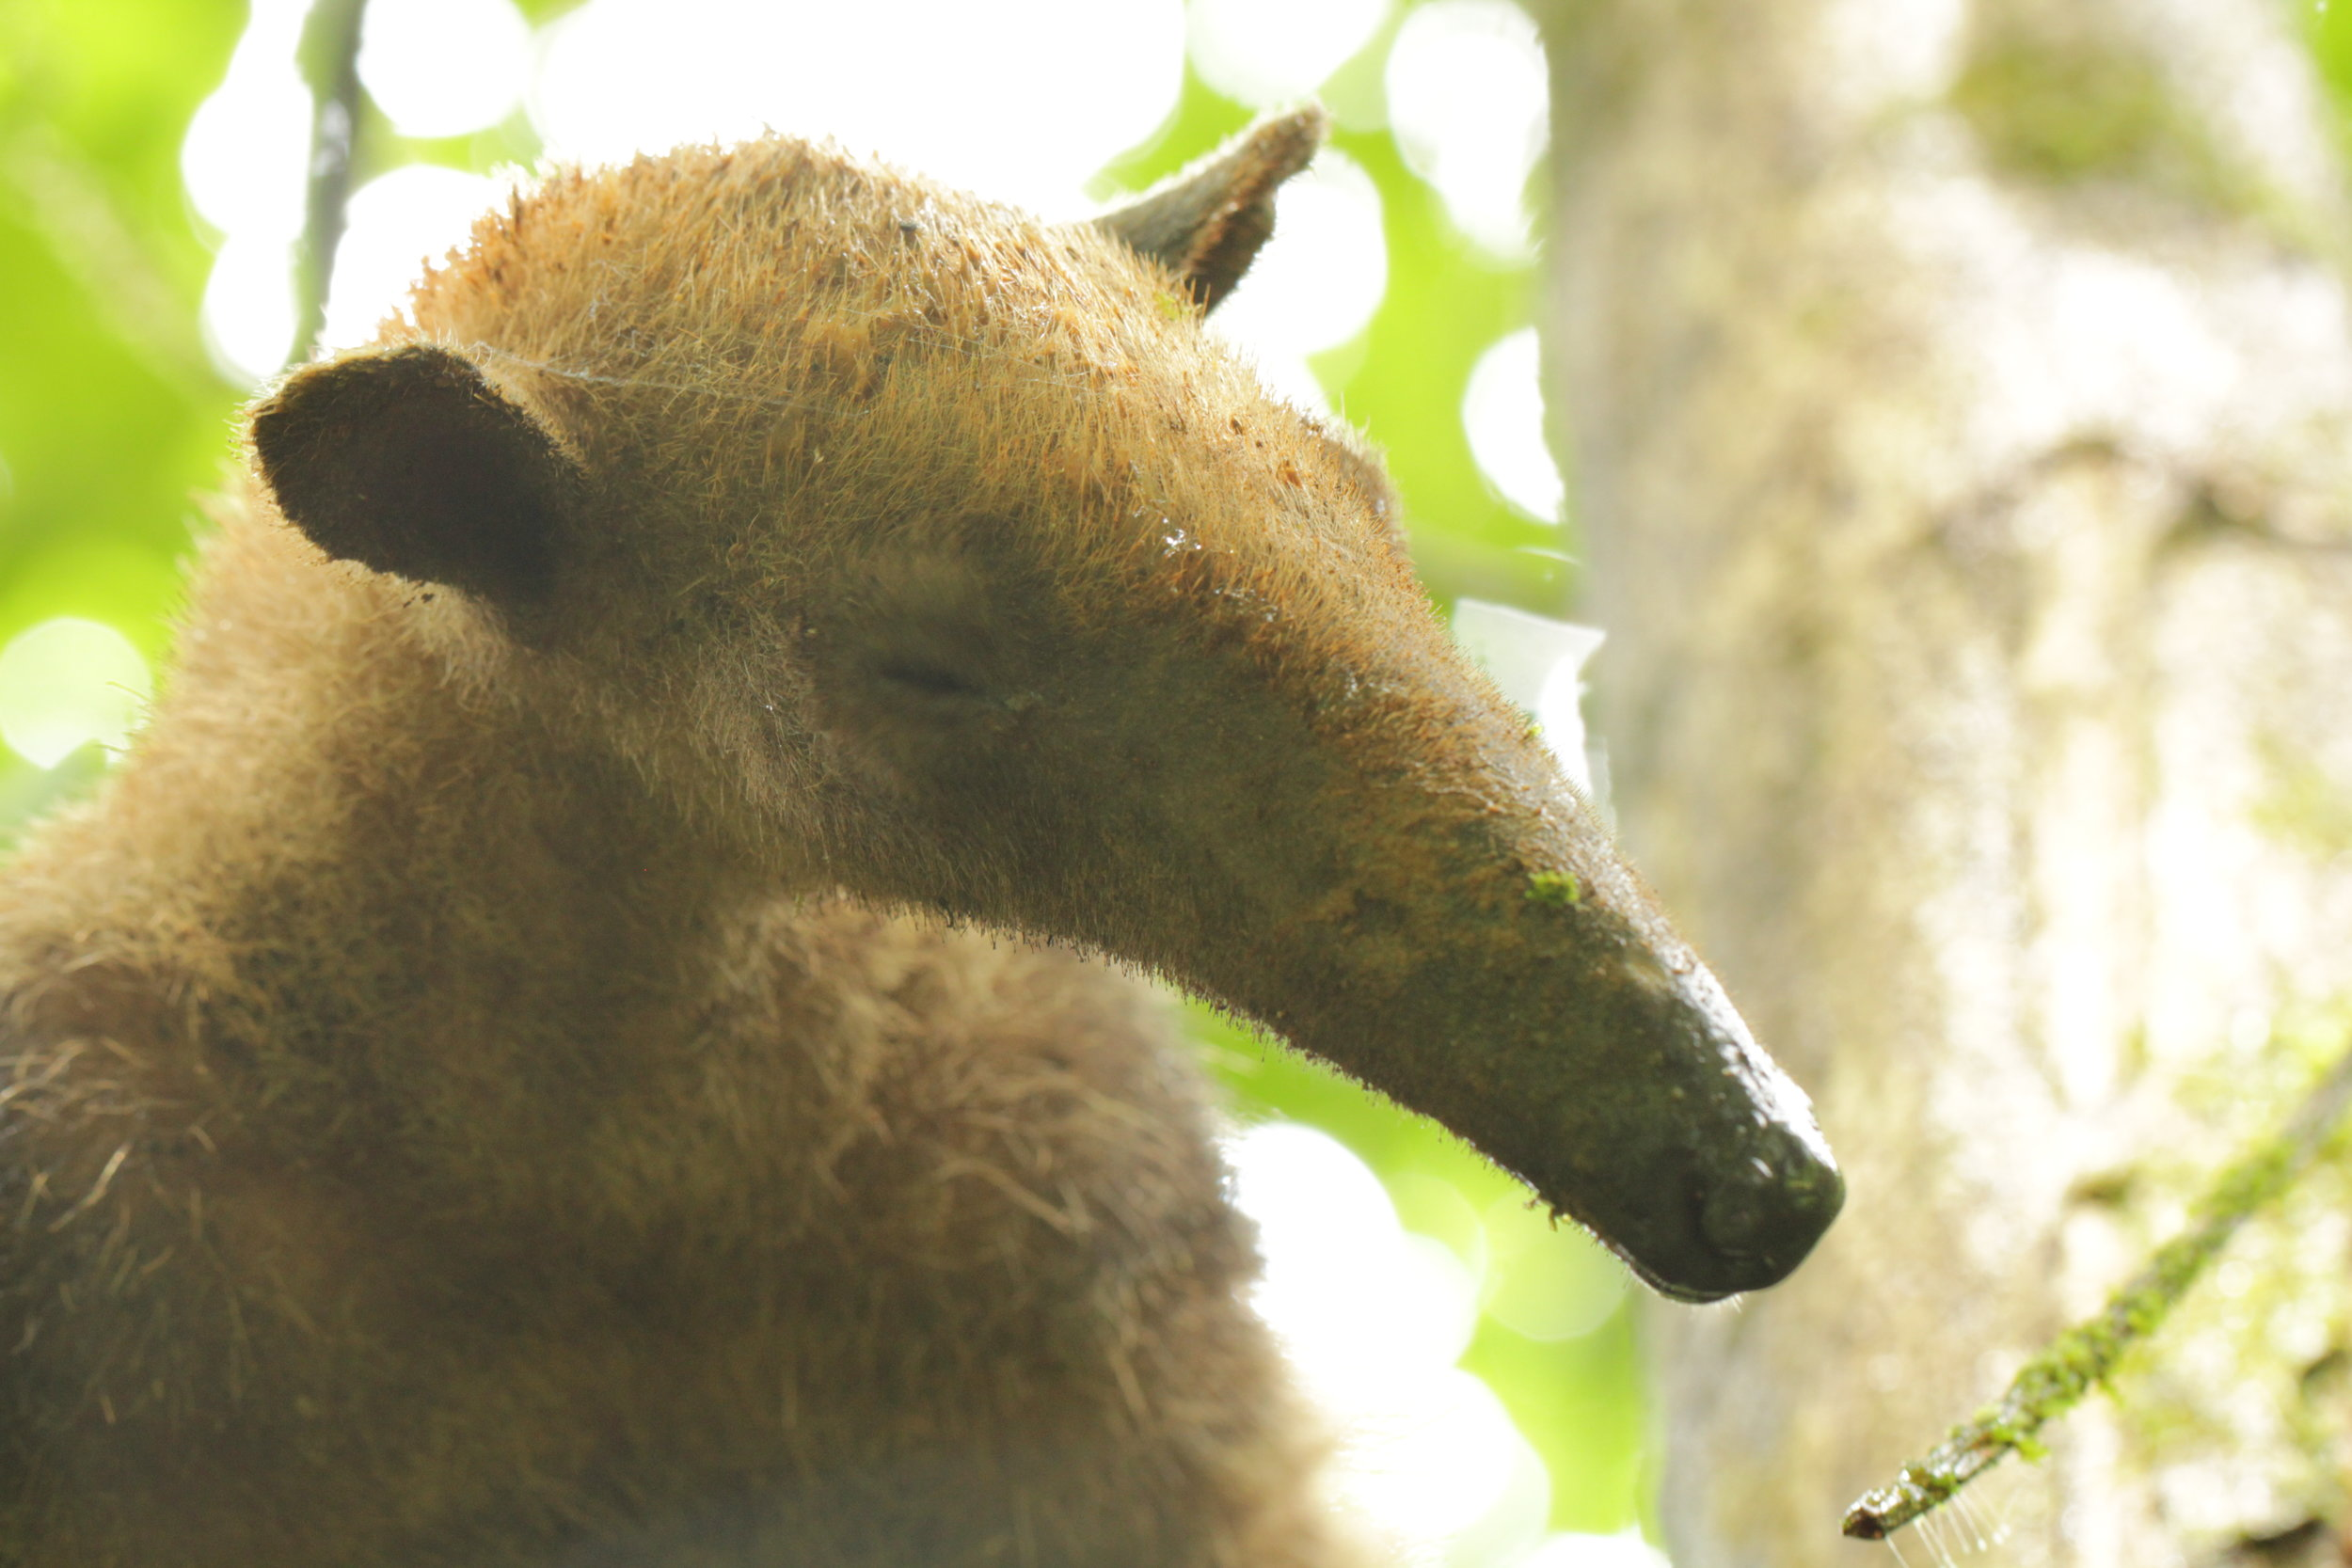 The tamandua, an arboreal anteater, pondering the potential meal waiting in a nearby Cecropia tree.